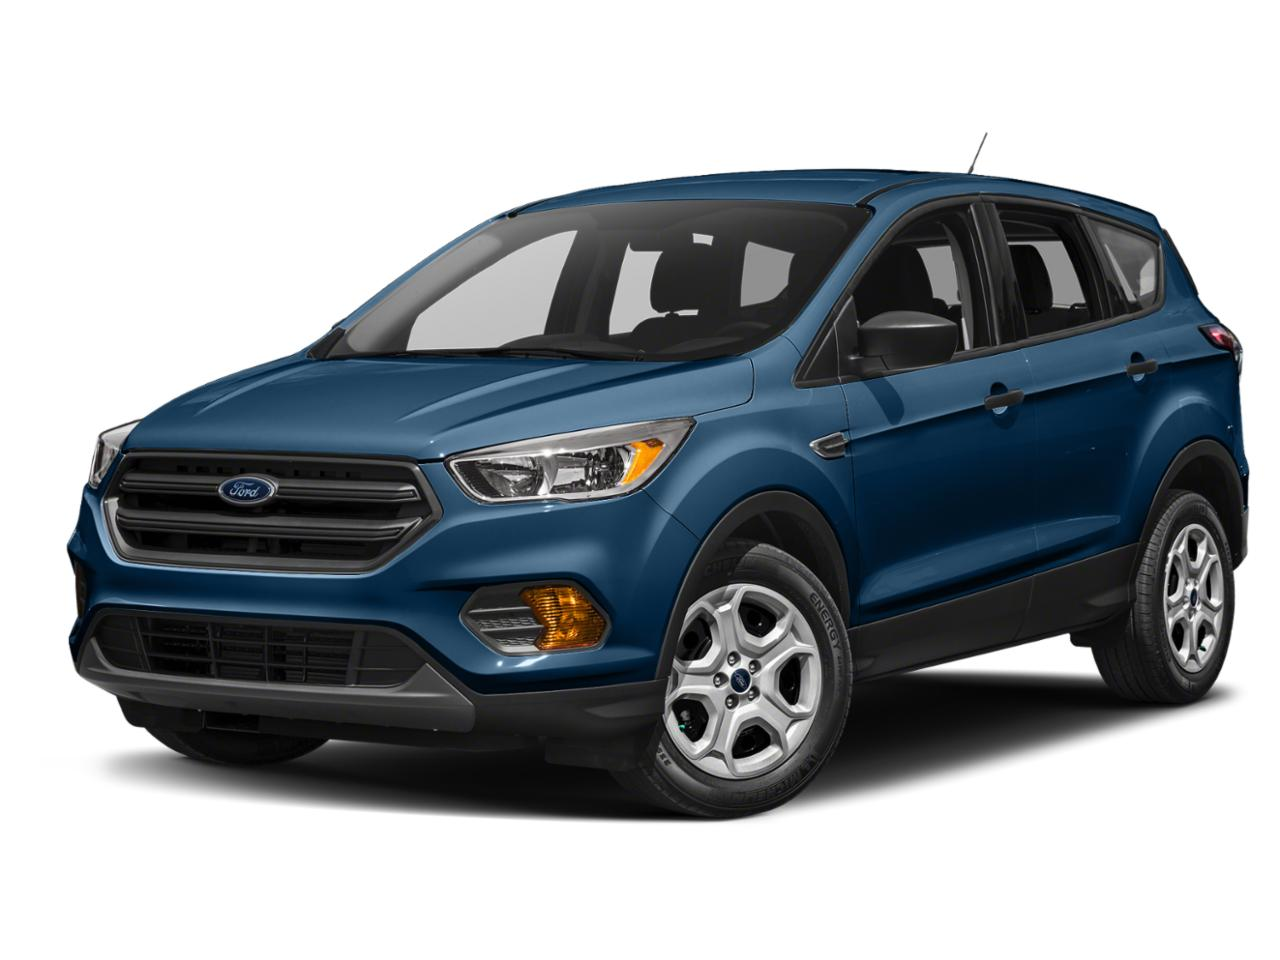 2019 Ford Escape Vehicle Photo in Bend, OR 97701